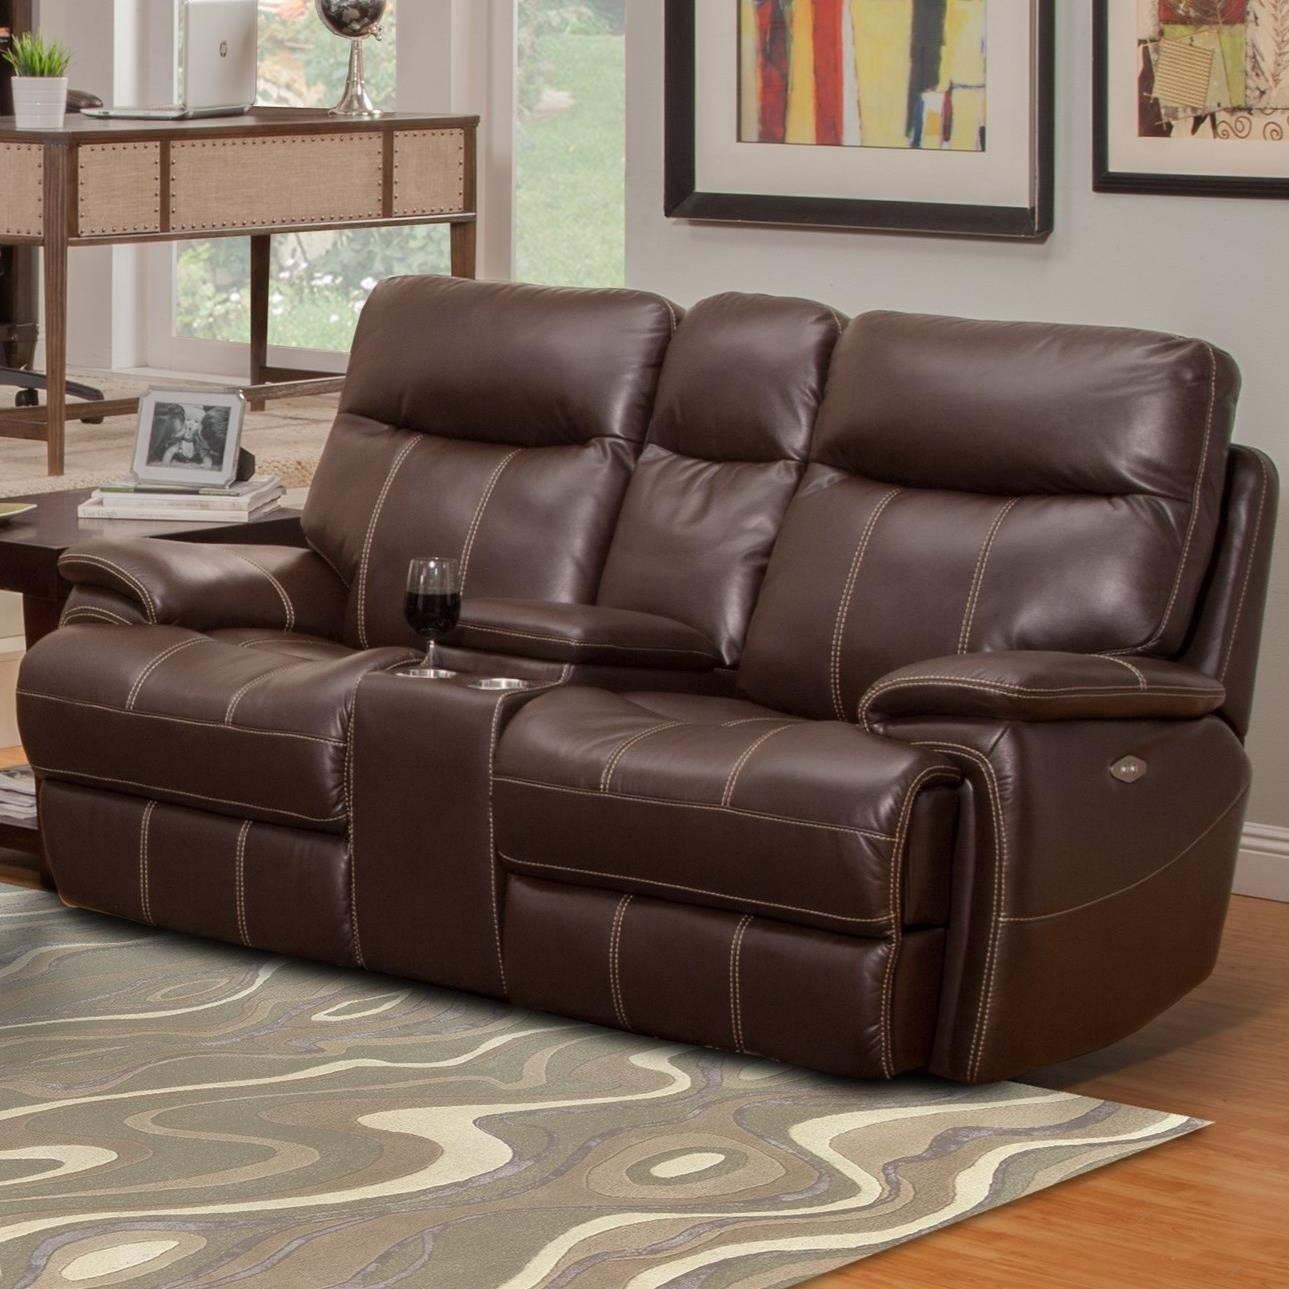 Parker Living Dylan Mdyl 822cp Mah Dual Recliner Power Console Loveseat With Cup Holders Del